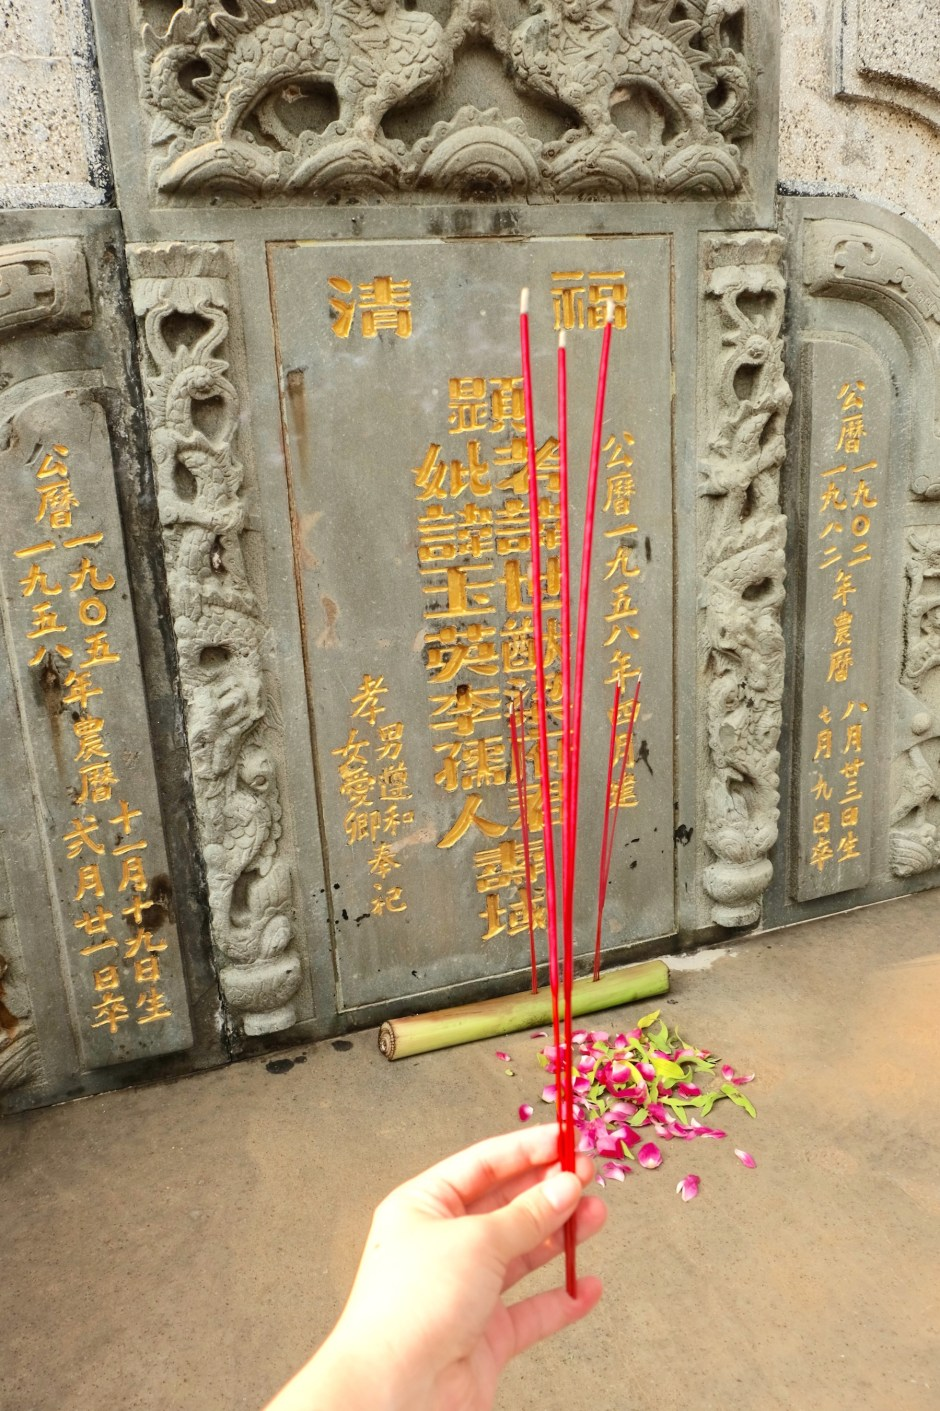 Incense for praying